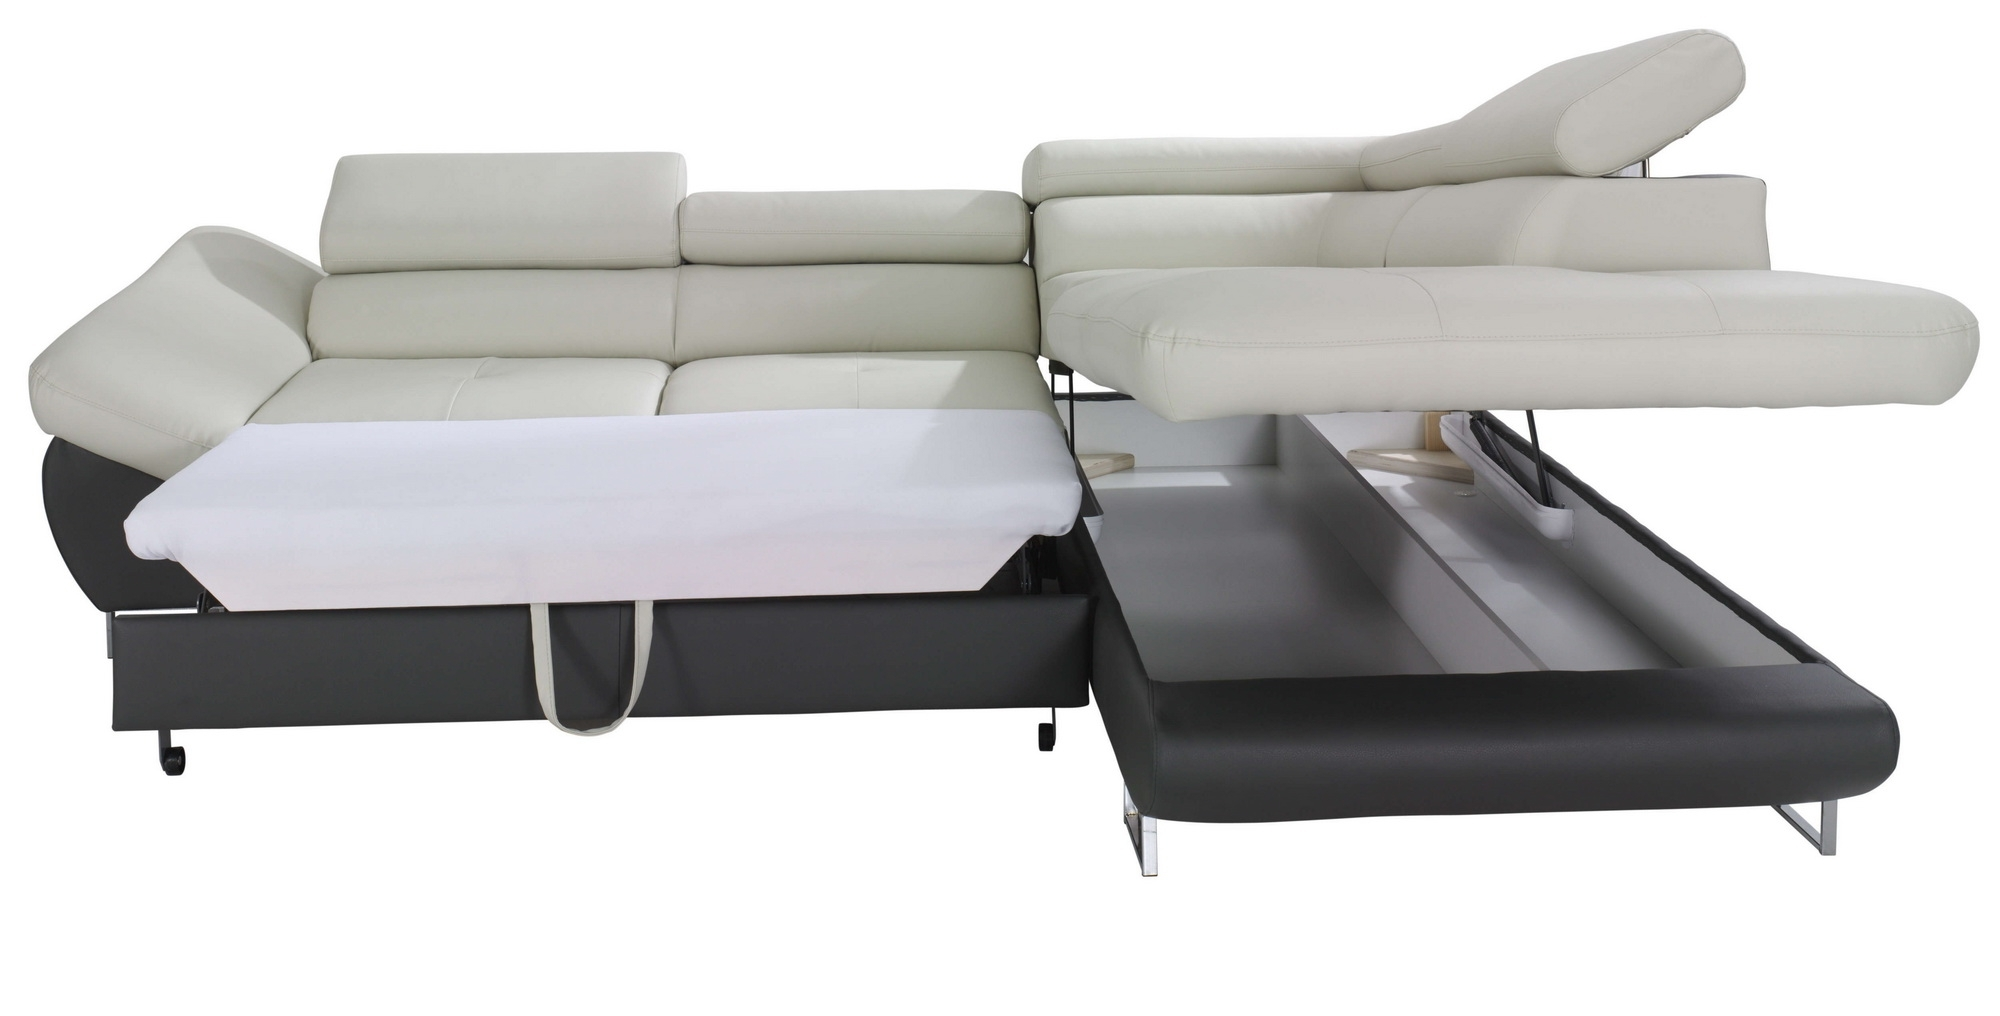 Fabio Sectional Sofa Sleeper With Storage, Creative Furniture In 2017 Chaise Sofa Beds With Storage (View 3 of 15)